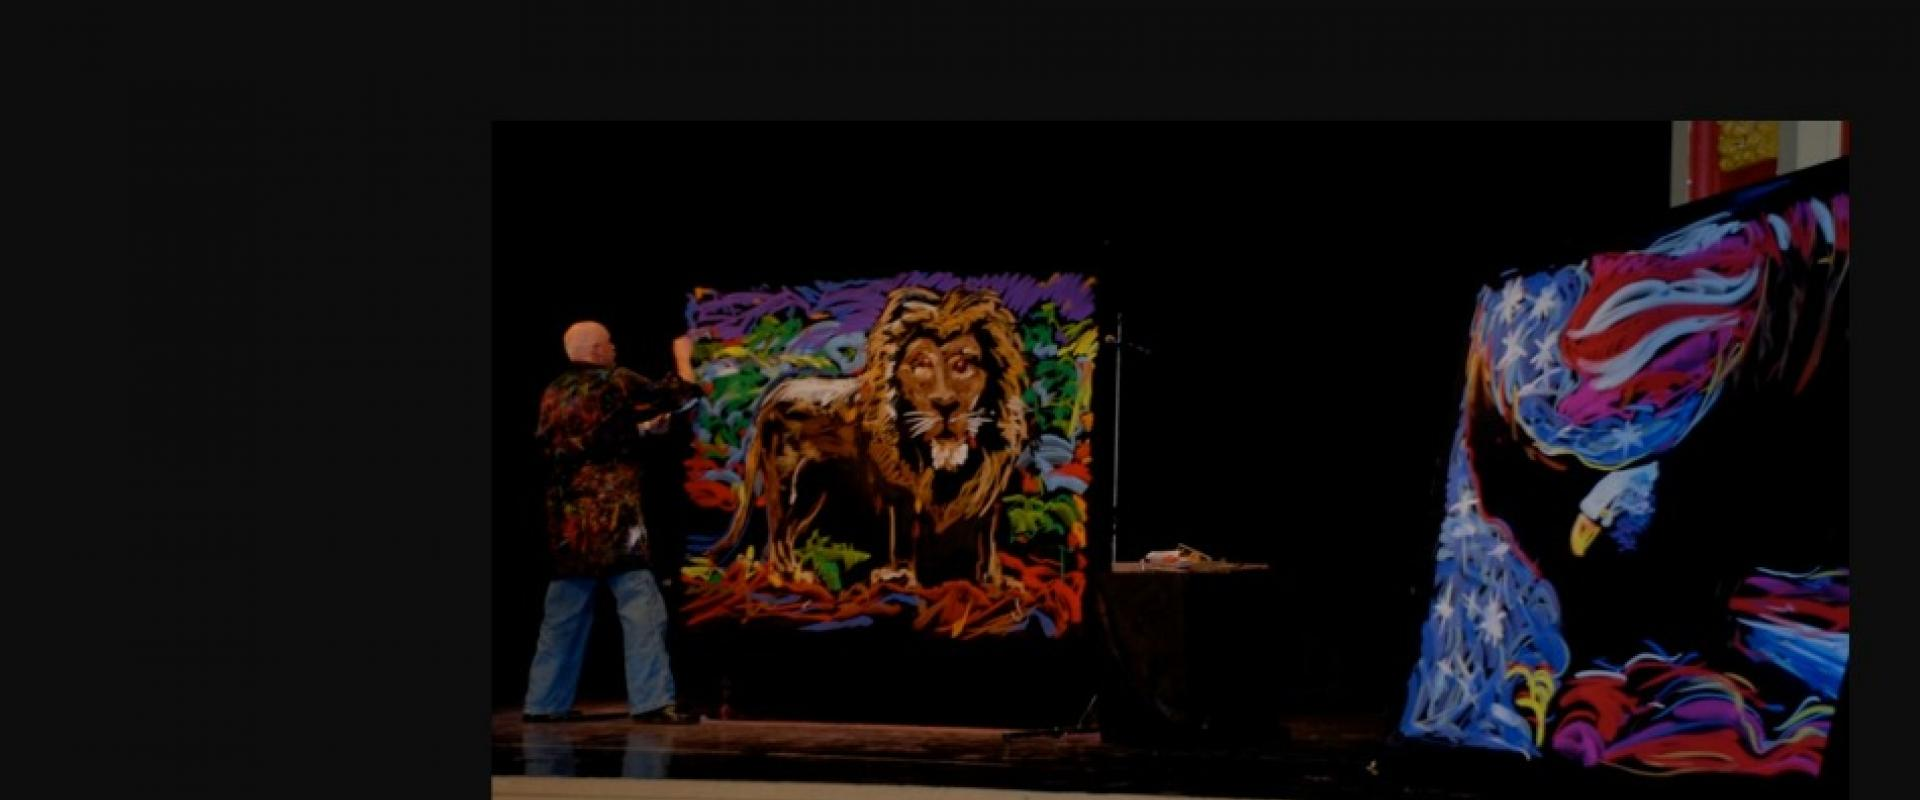 The Art of Inspiration school assembly